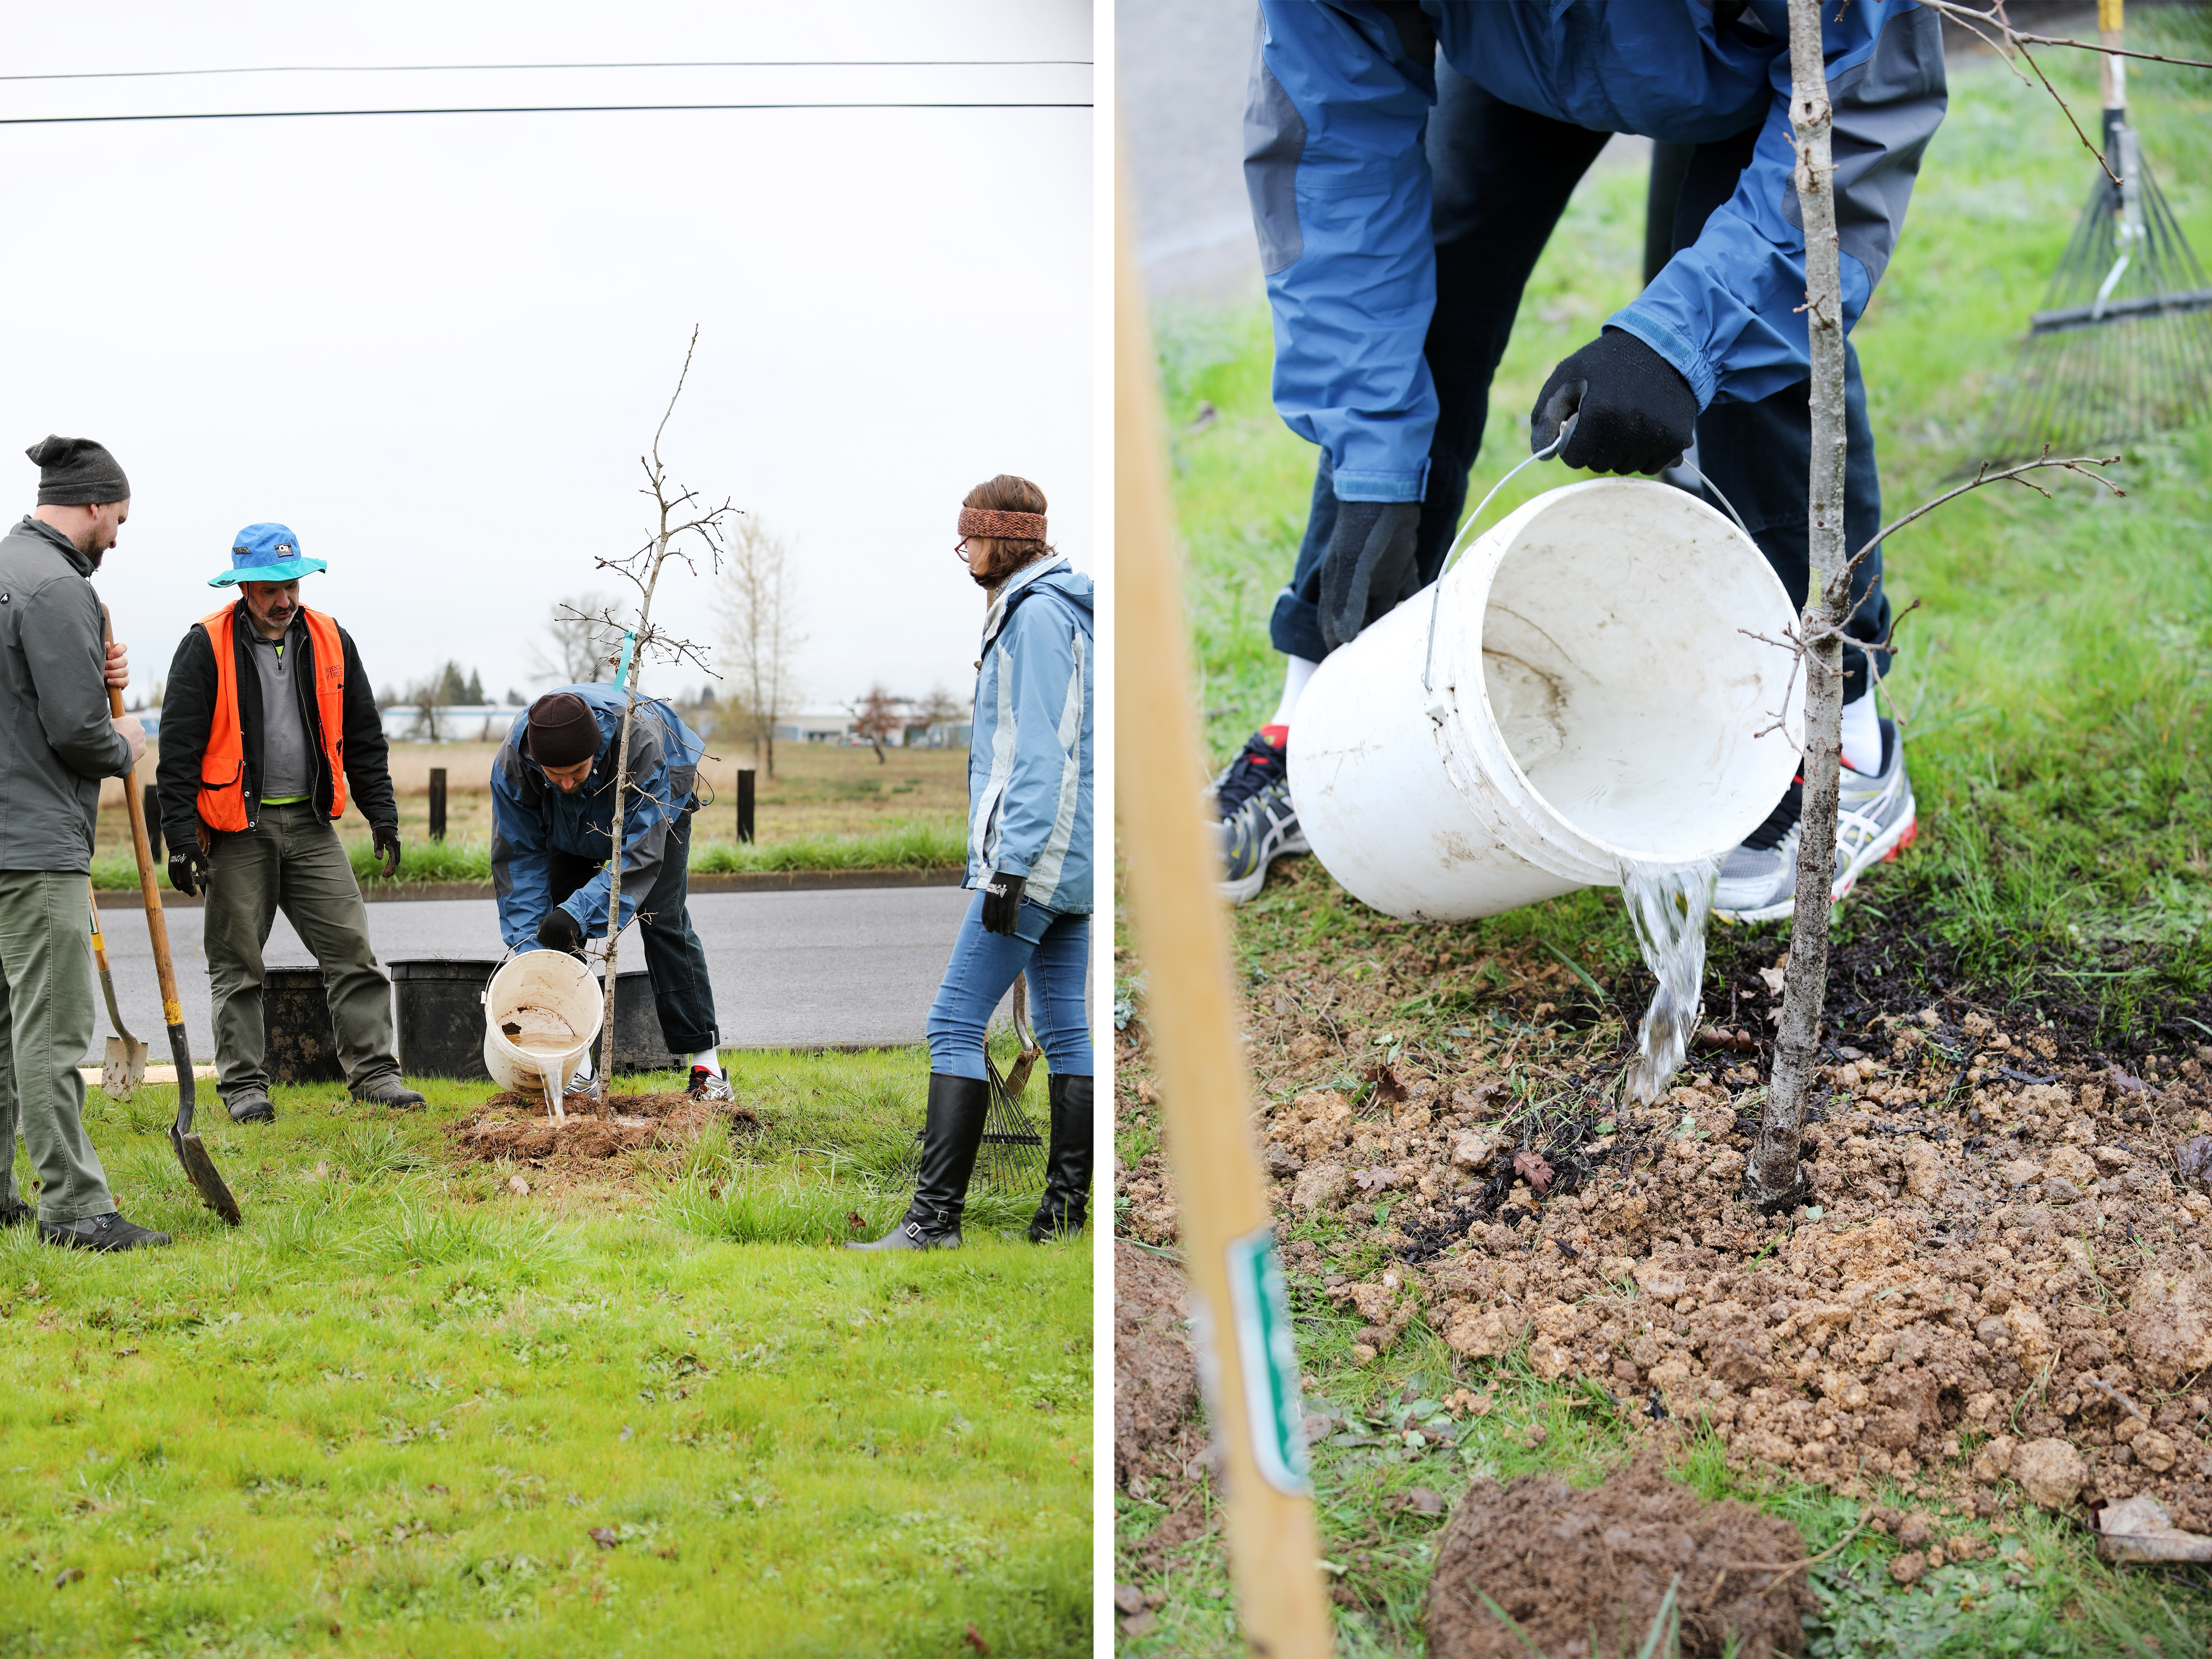 People planting and watering trees near open field